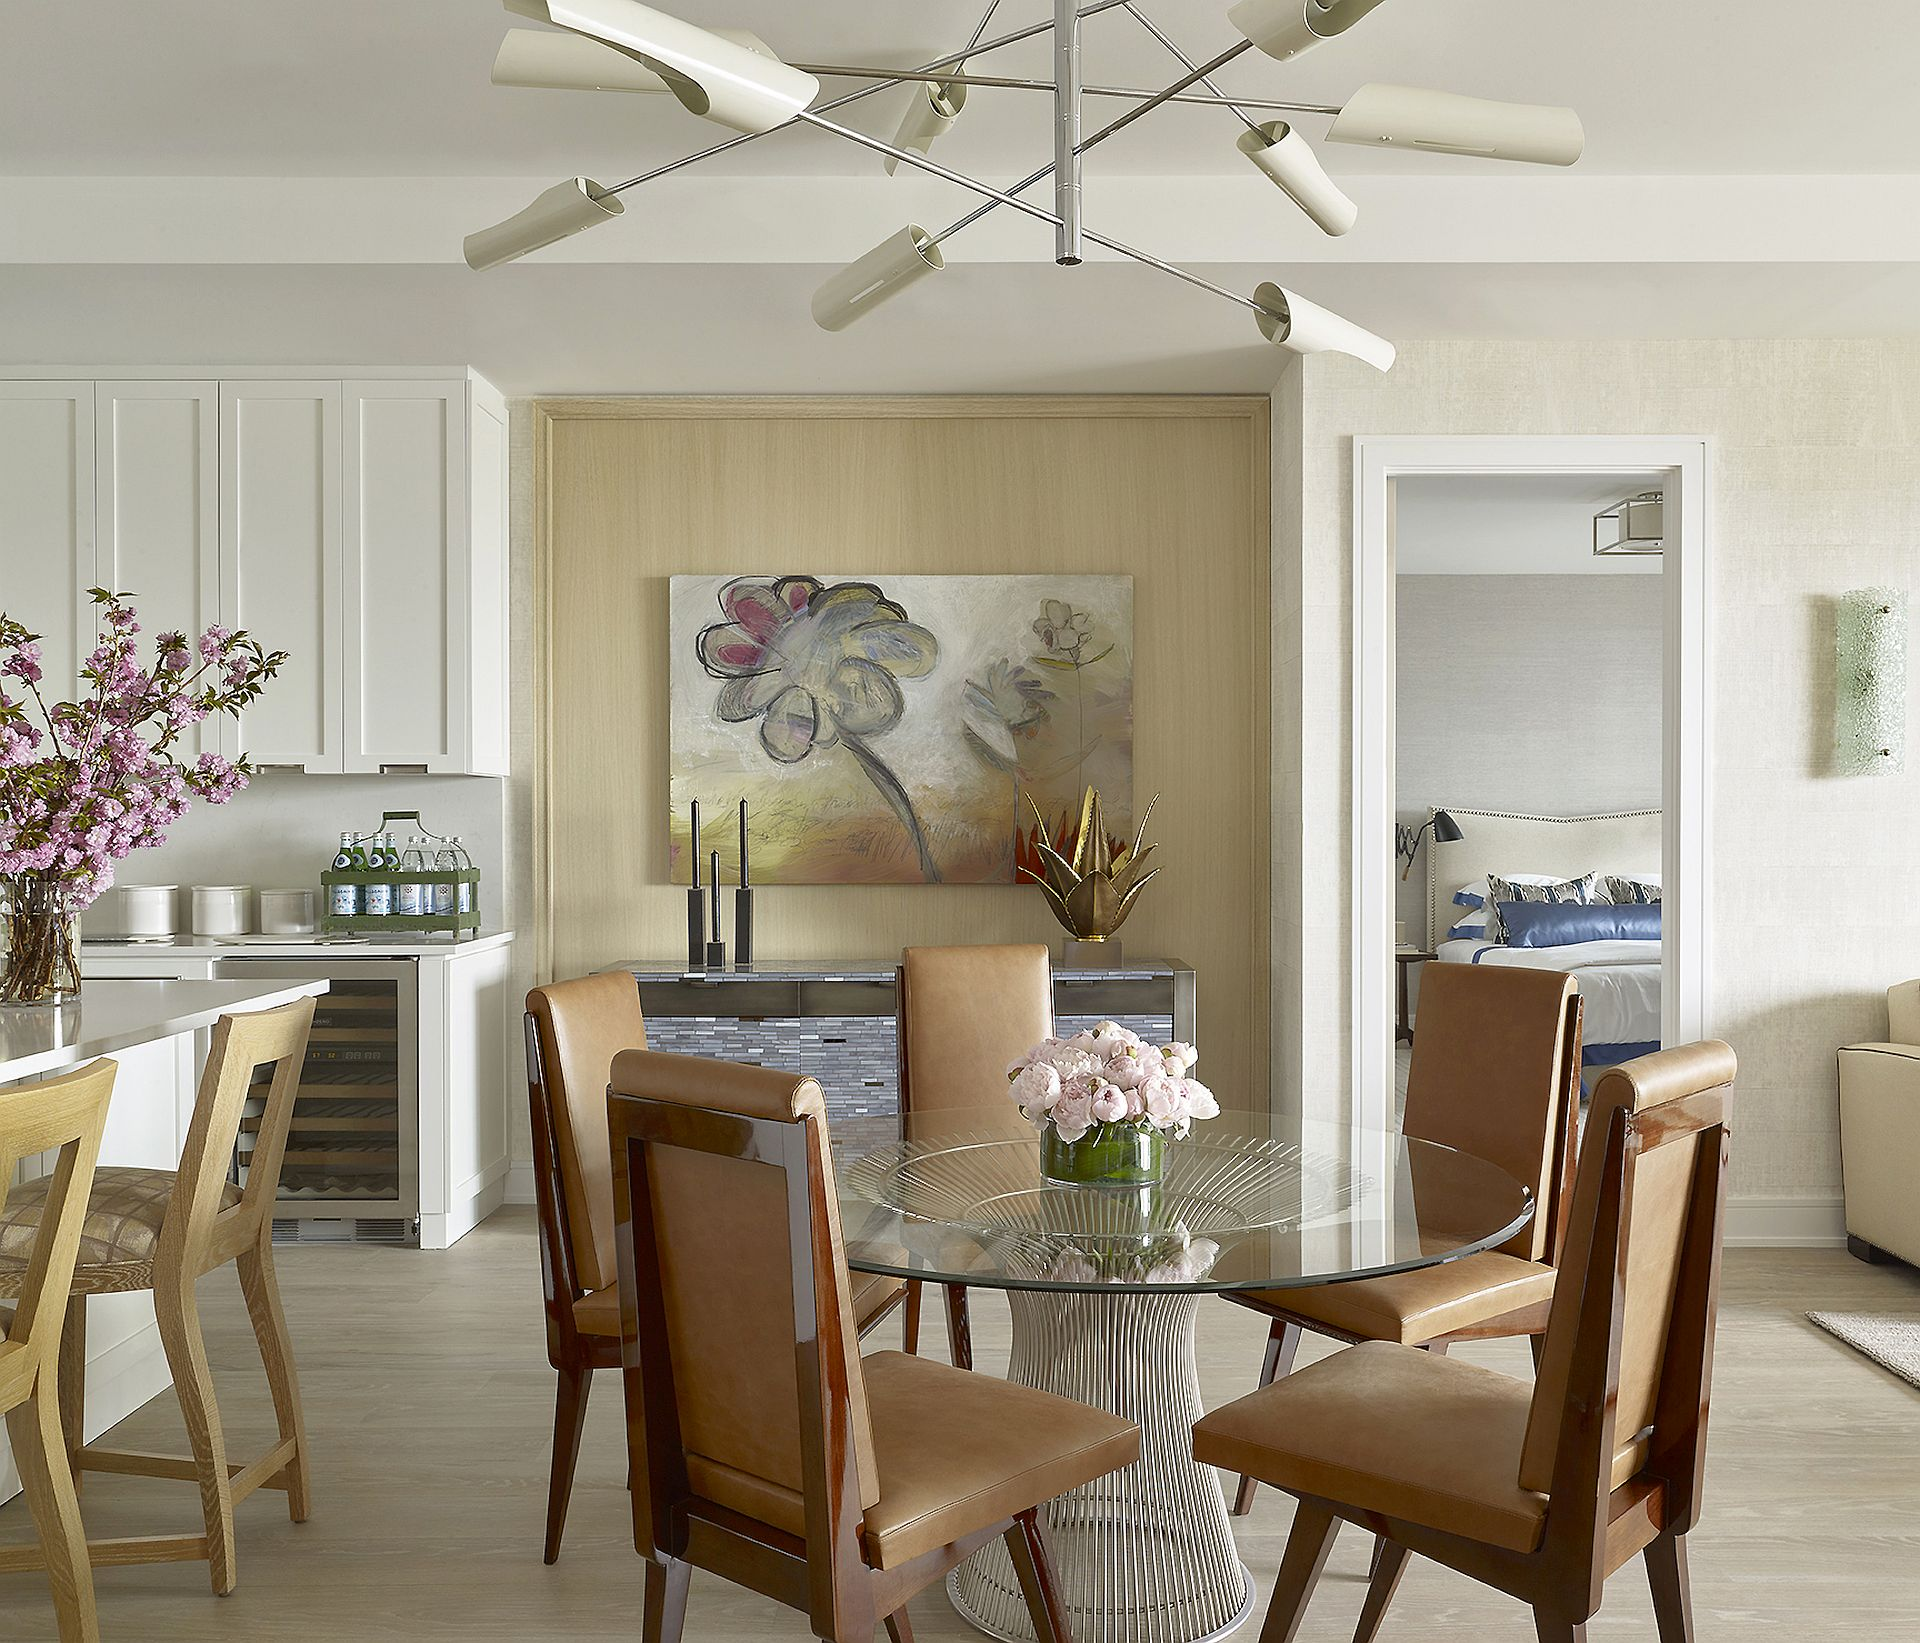 4_Harbor View_Dining Room.jpg